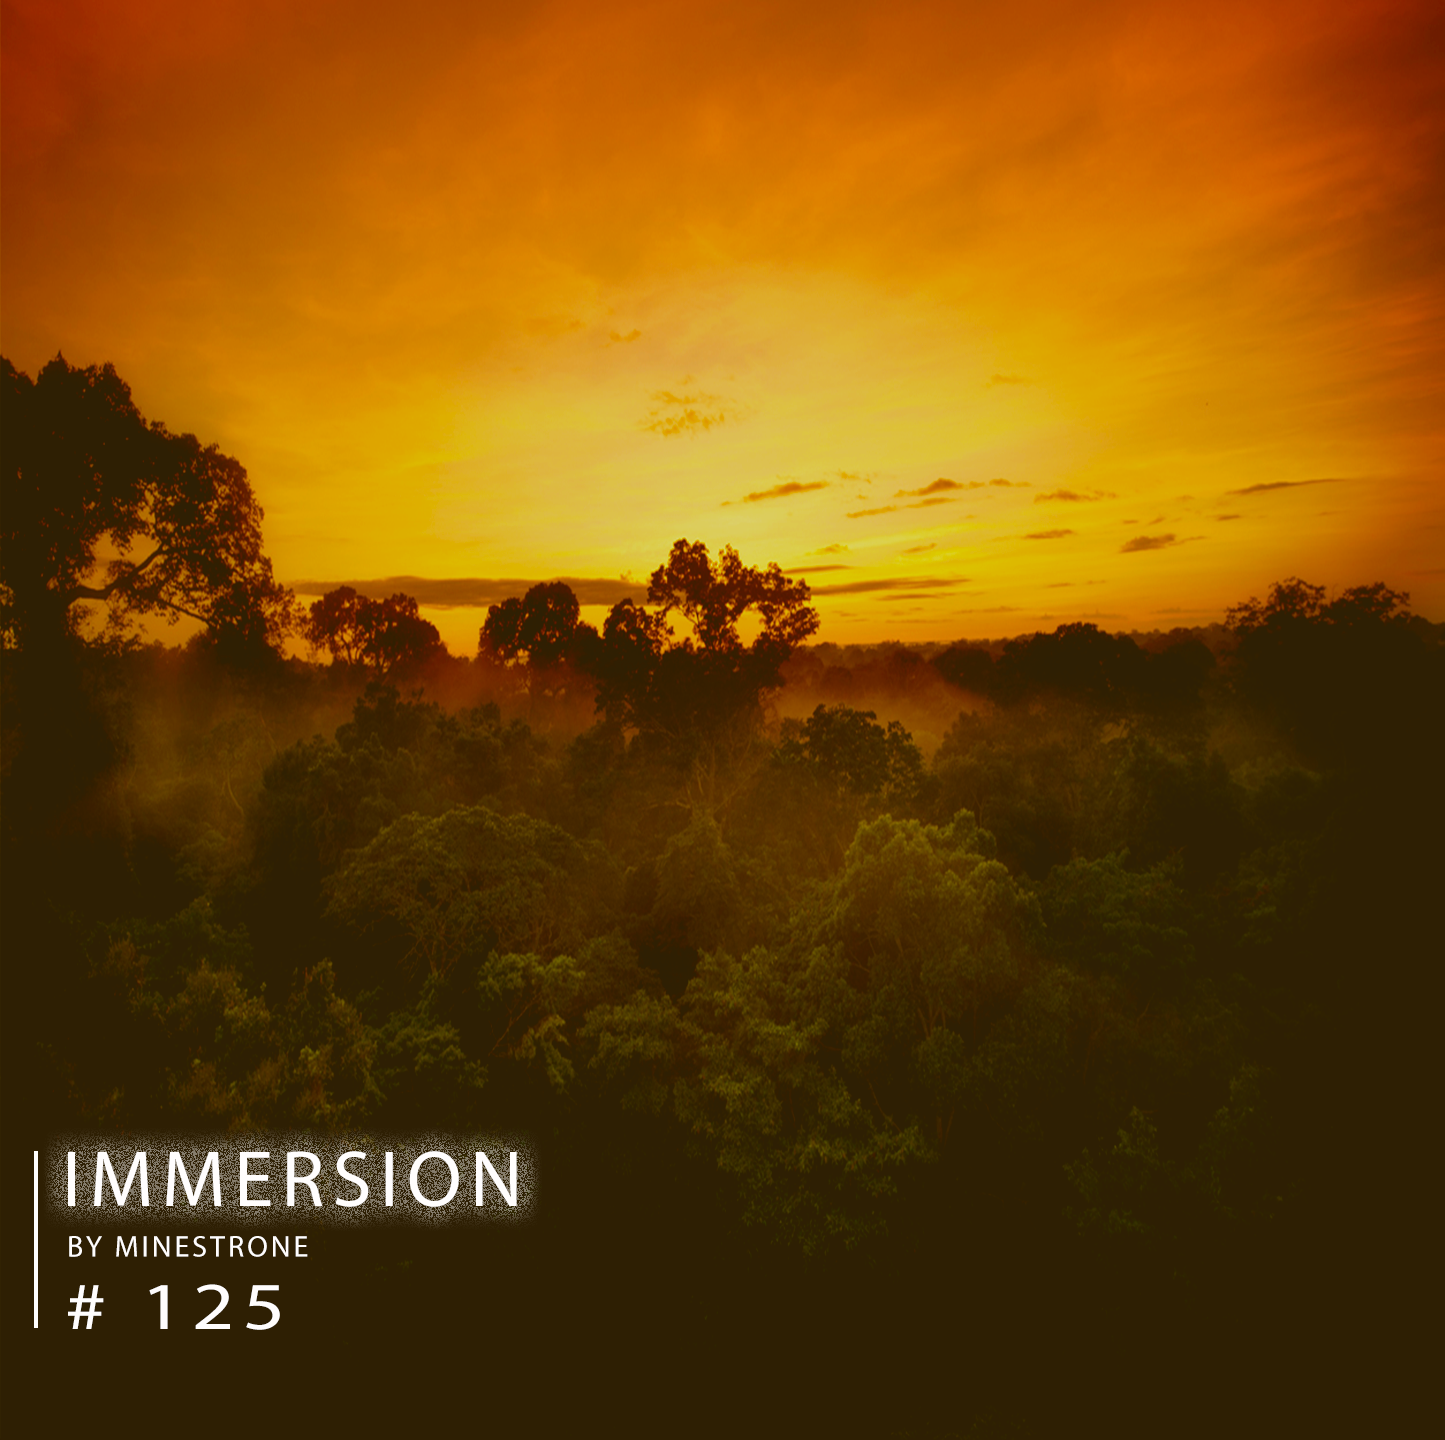 Immersion :: Episode 125 (aired on October 28th, 2019) banner logo